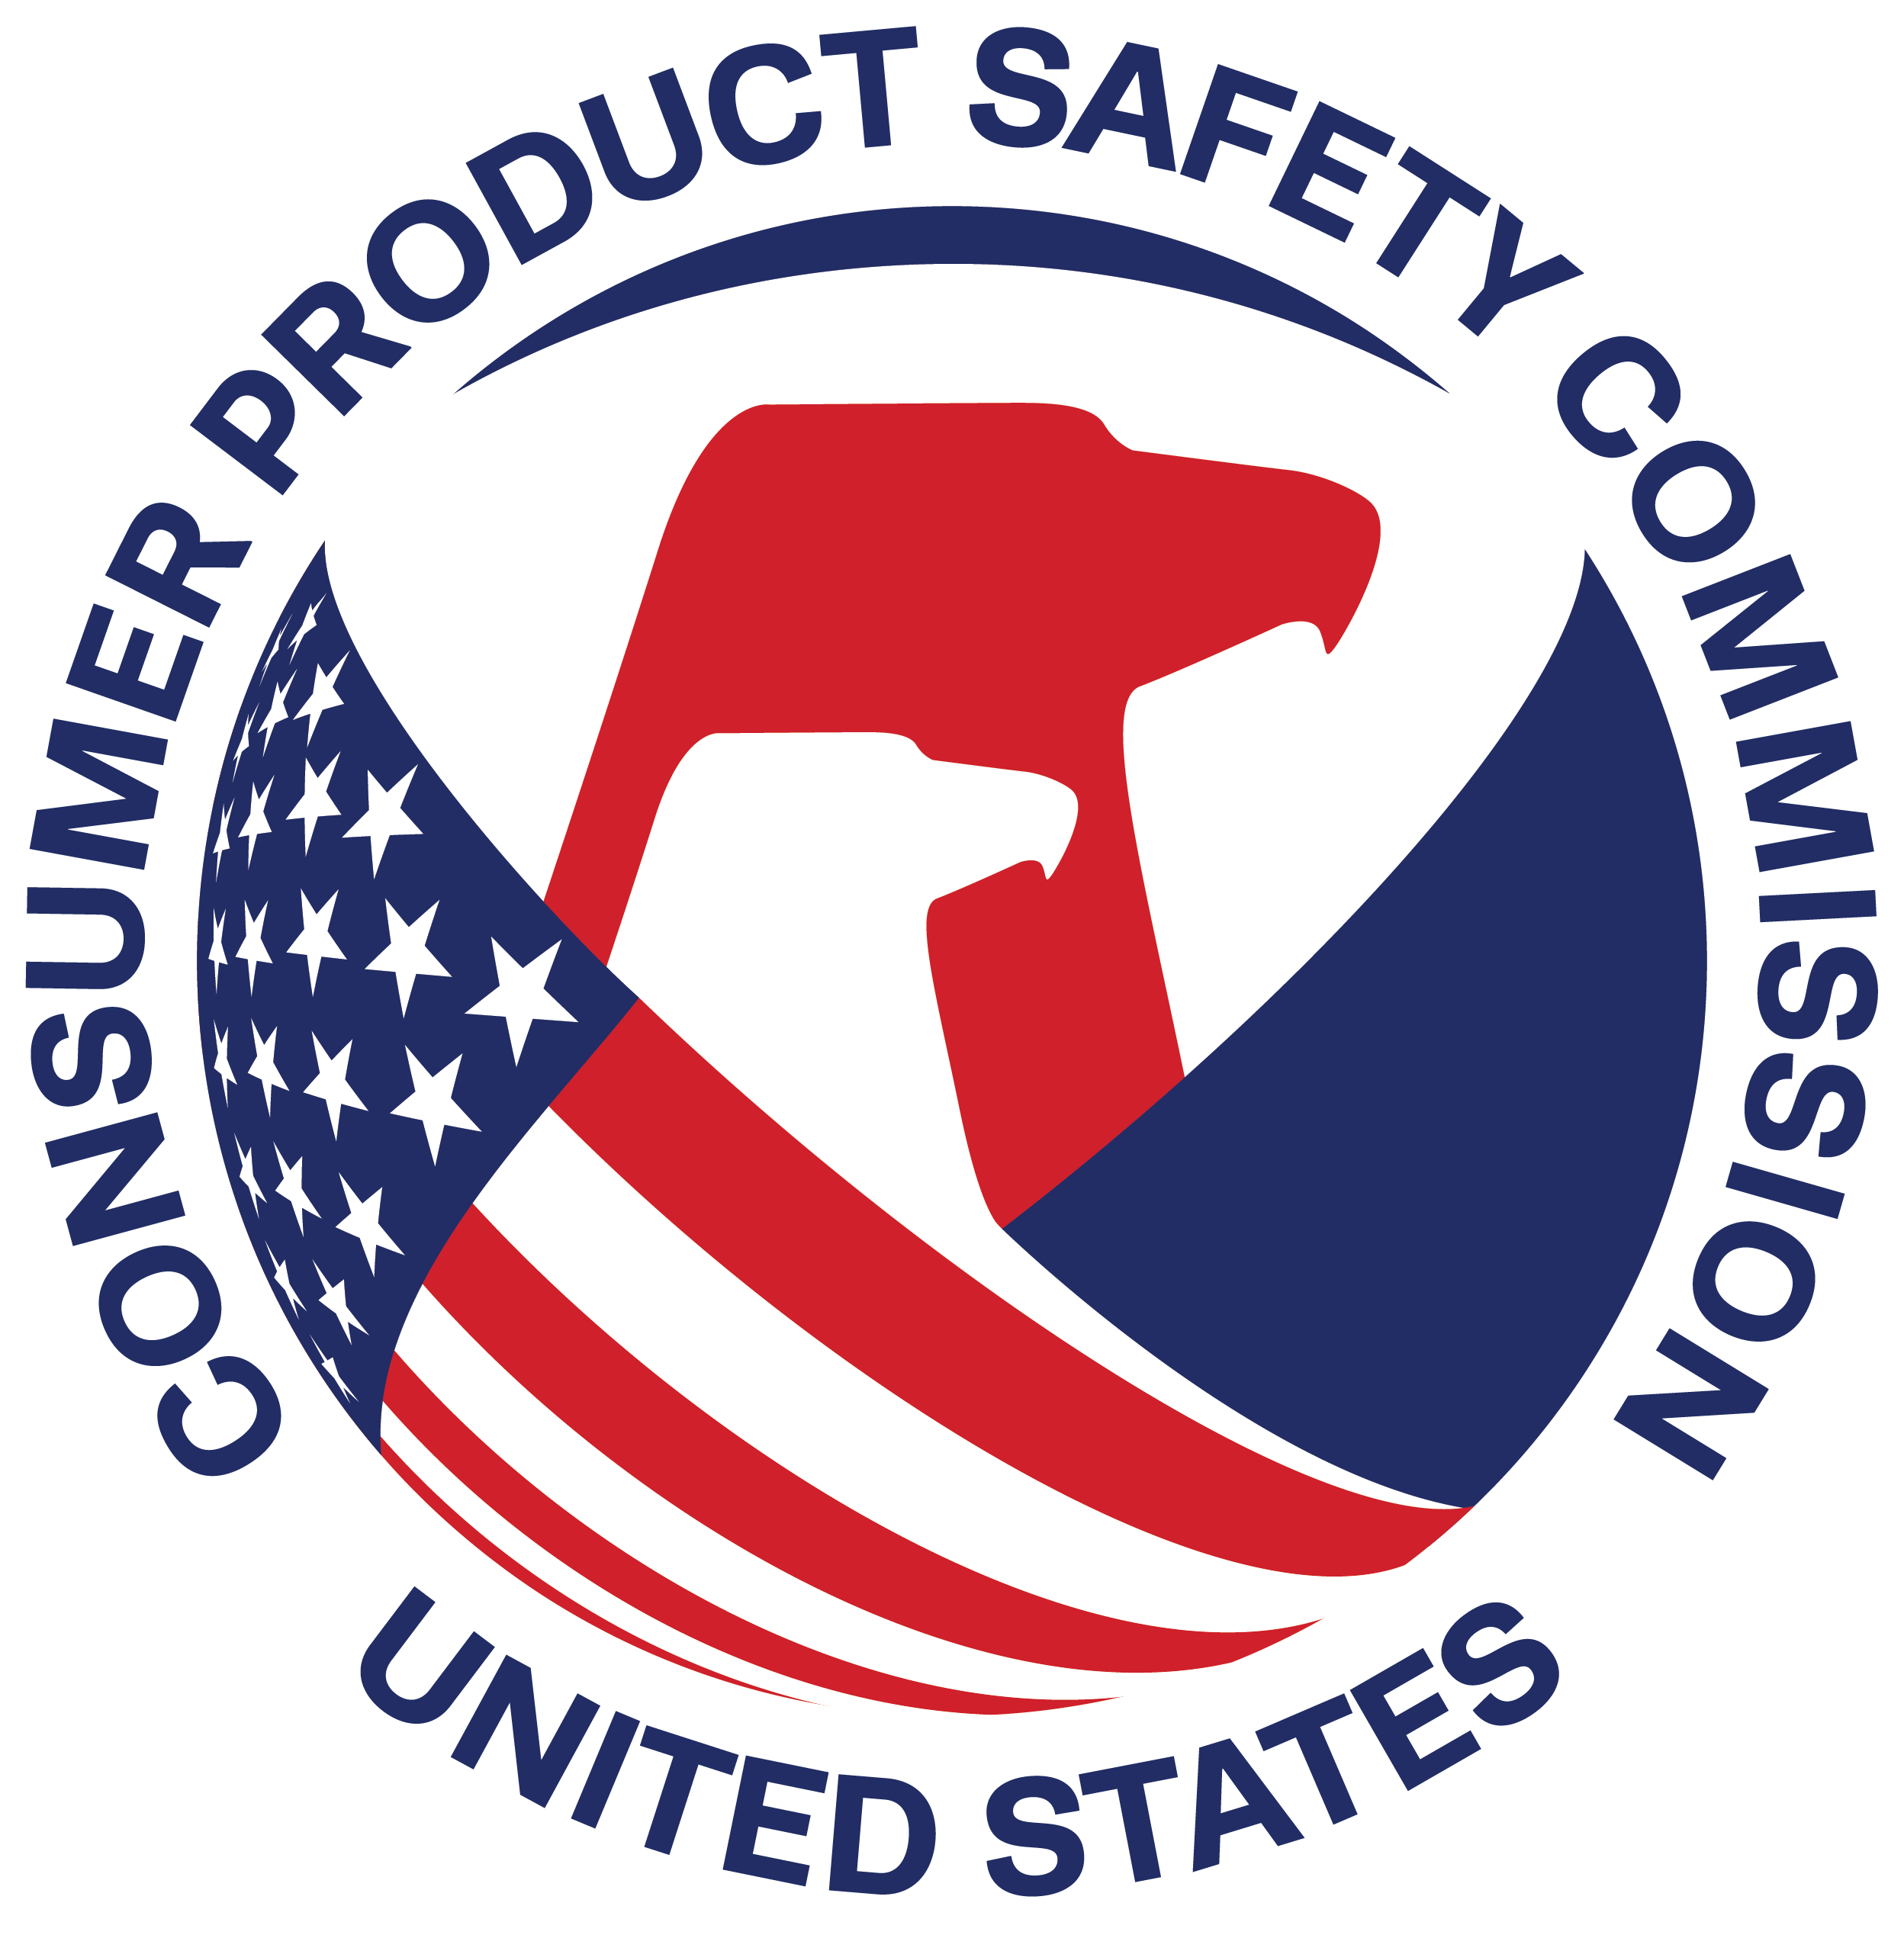 CPSC Celebrates National Consumer Protection Week: March 4-10, 2018